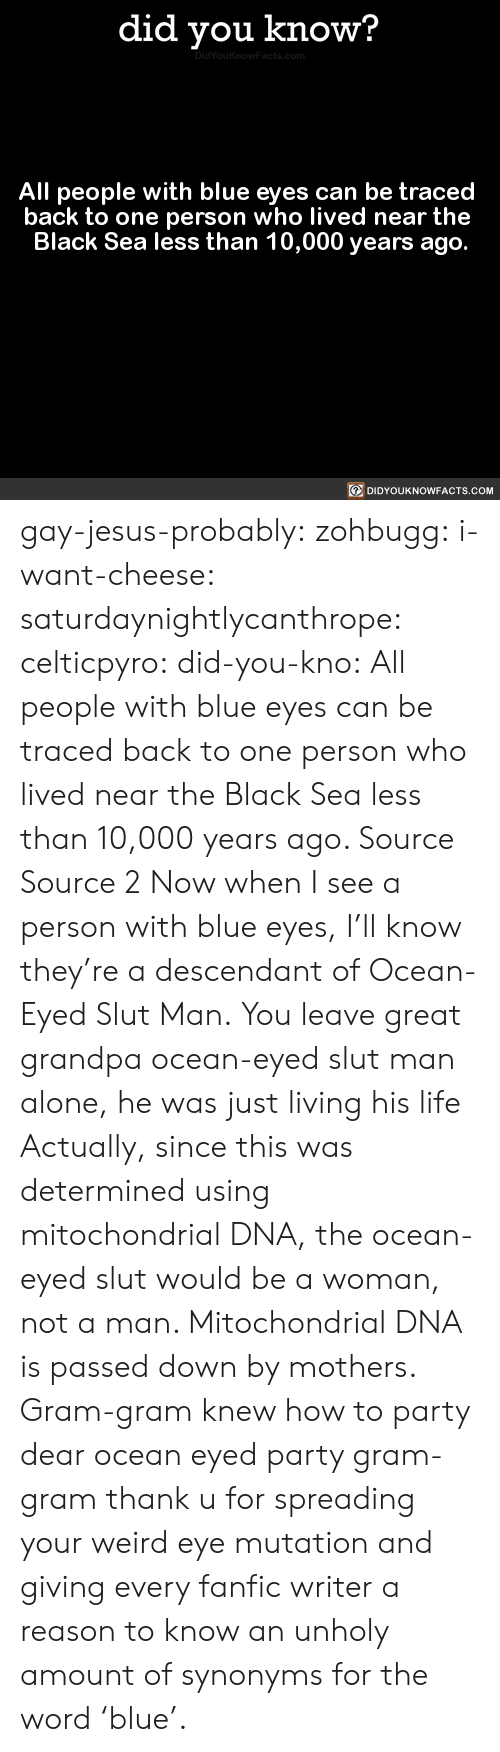 Being Alone, Jesus, and Life: did you know?  All people with blue eyes can be traced  back to one person who lived near the  Black Sea less than 10,000 years ago  回DIDYOUKNOWFACTS.COM gay-jesus-probably: zohbugg:  i-want-cheese:  saturdaynightlycanthrope:  celticpyro:  did-you-kno: All people with blue eyes can be traced  back to one person who lived near the  Black Sea less than 10,000 years ago.  Source Source 2 Now when I see a person with blue eyes, I'll know they're a descendant of Ocean-Eyed Slut Man.   You leave great grandpa ocean-eyed slut man alone, he was just living his life  Actually, since this was determined using mitochondrial DNA, the ocean-eyed slut would be a woman, not a man. Mitochondrial DNA is passed down by mothers.   Gram-gram knew how to party  dear ocean eyed party gram-gram thank u for spreading your weird eye mutation and giving every fanfic writer a reason to know an unholy amount of synonyms for the word'blue'.